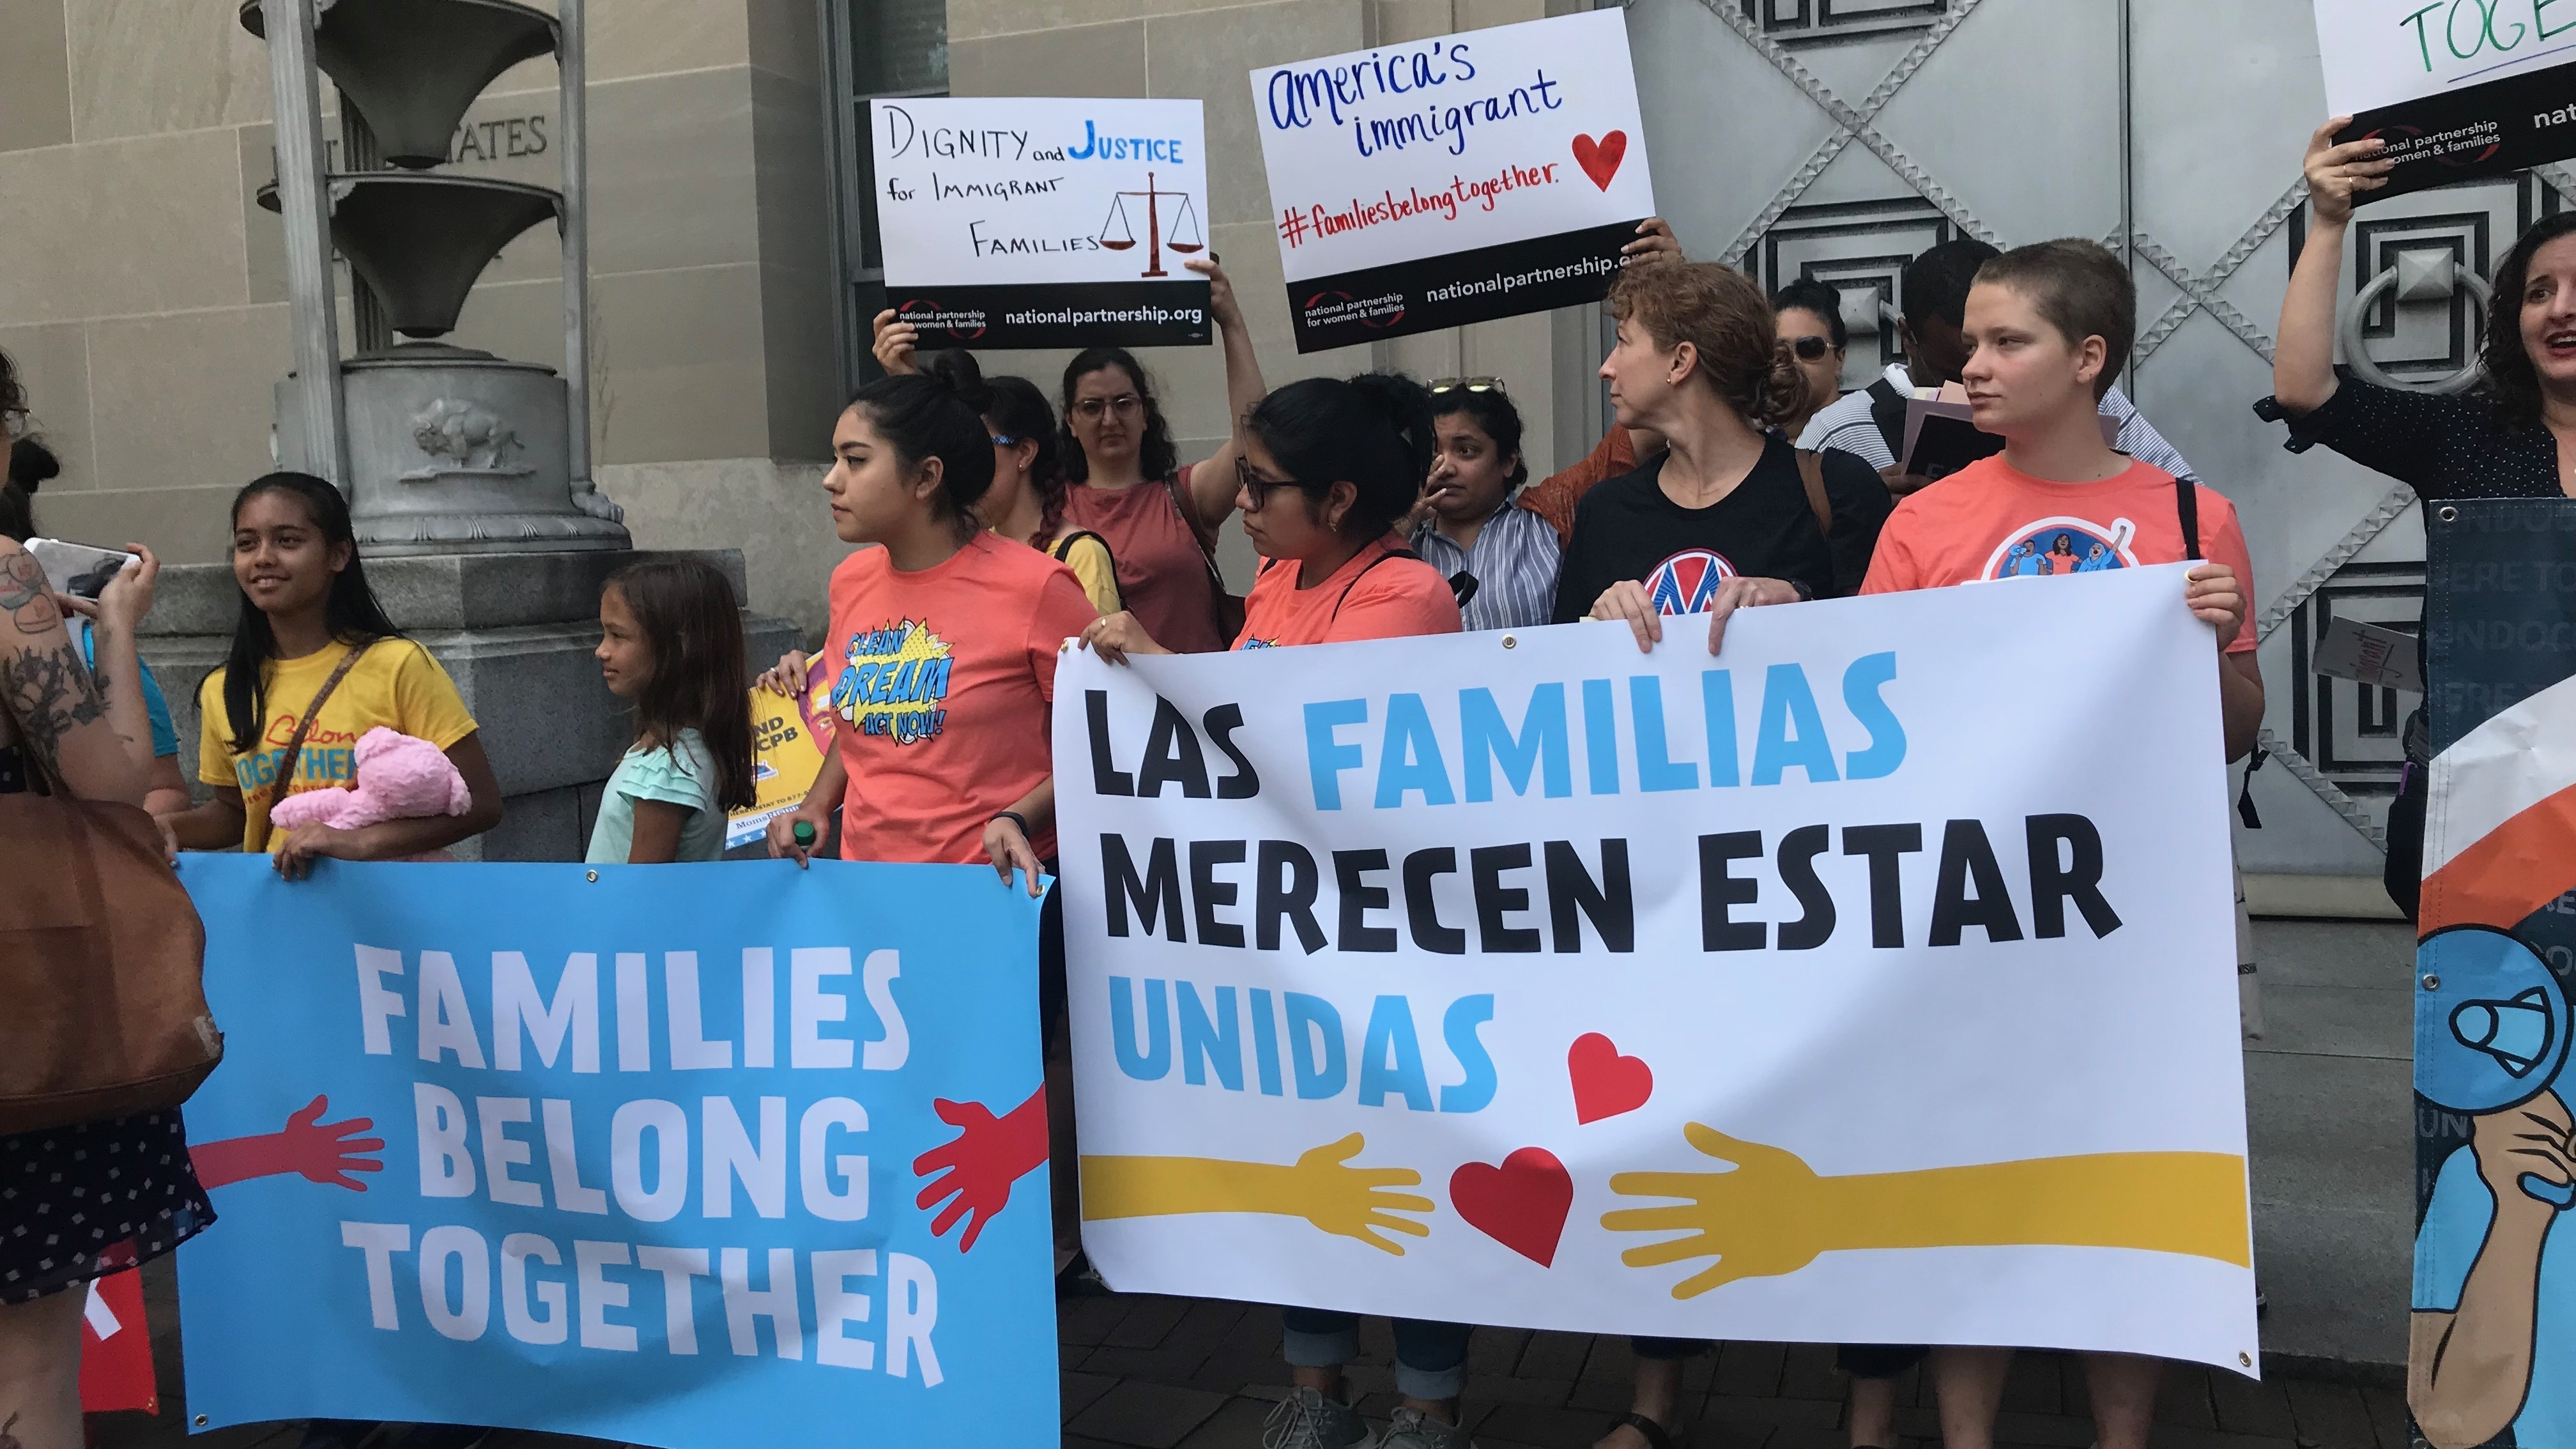 More than 100 people chanted and sang outside a Justice Department building in Washington, D.C., on Friday. The protesters gathered to condemn the Trump administration's practice of separating immigrant parents and children at the southern border.